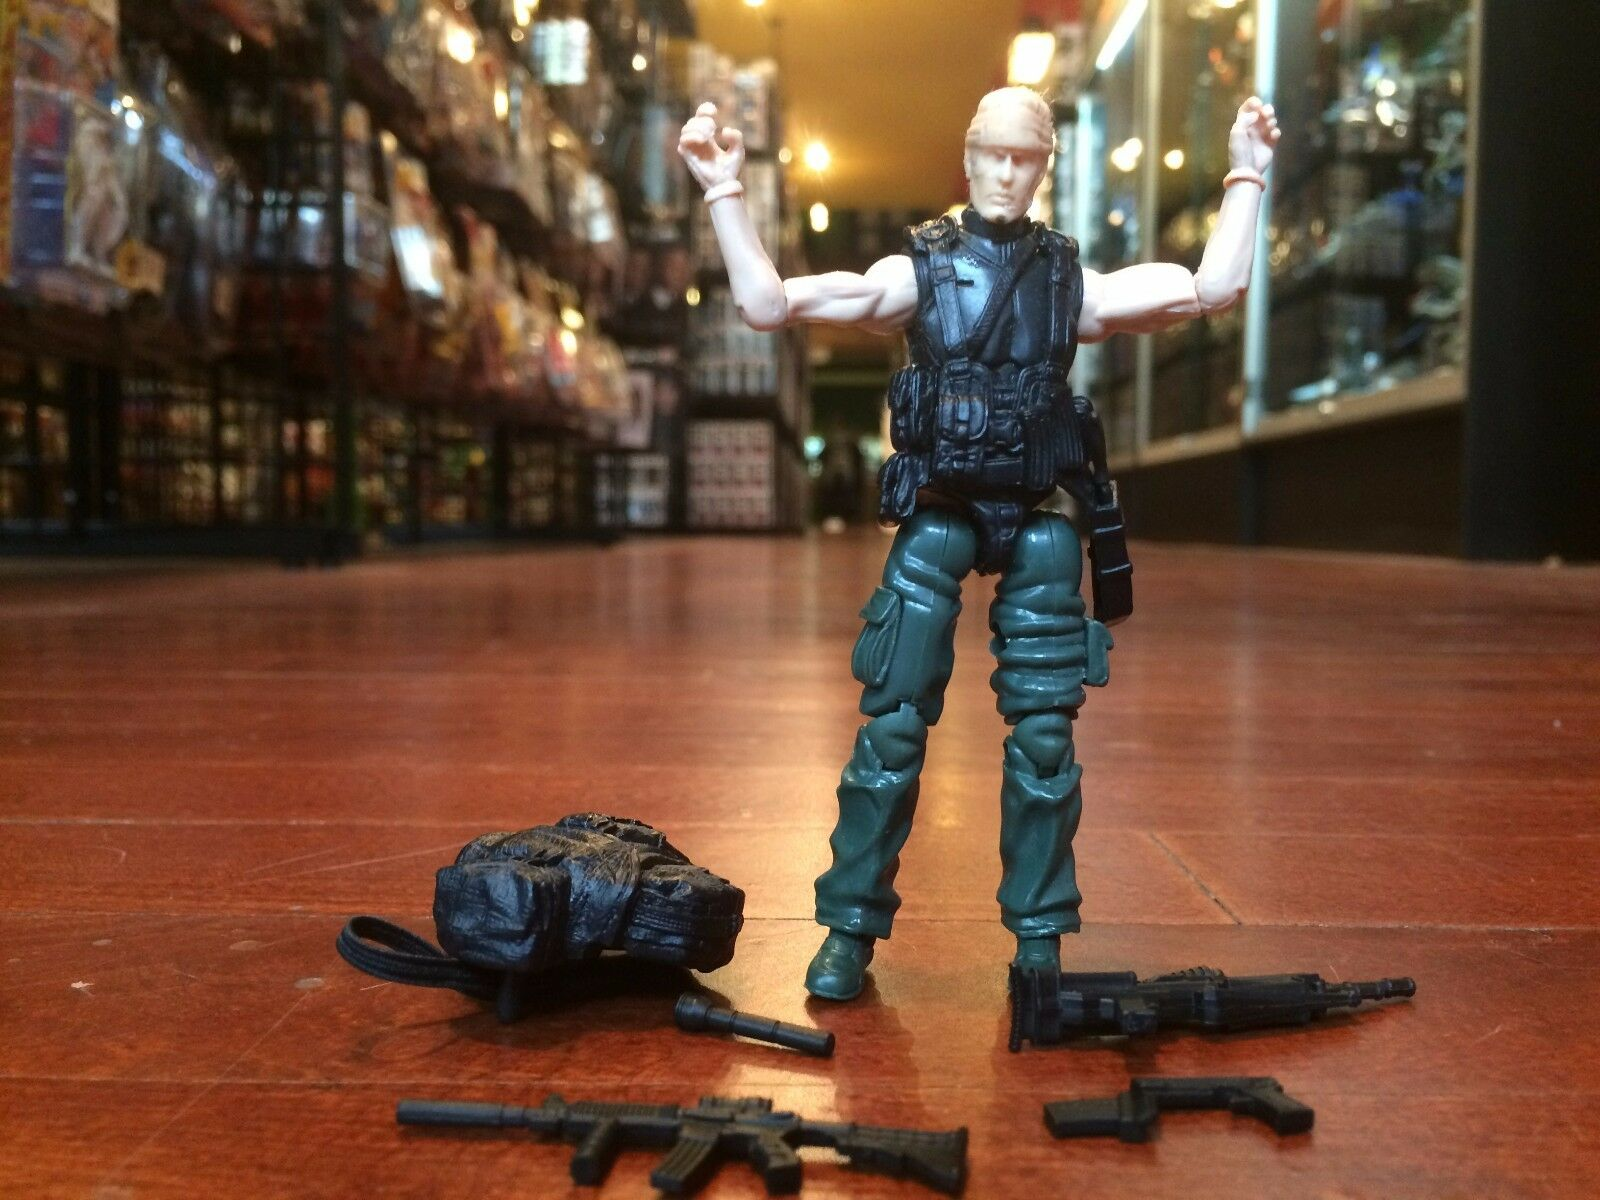 Unpainted Predotype Test Shot GI Joe Pursuit of Cobra POC Jungle Duke Figure